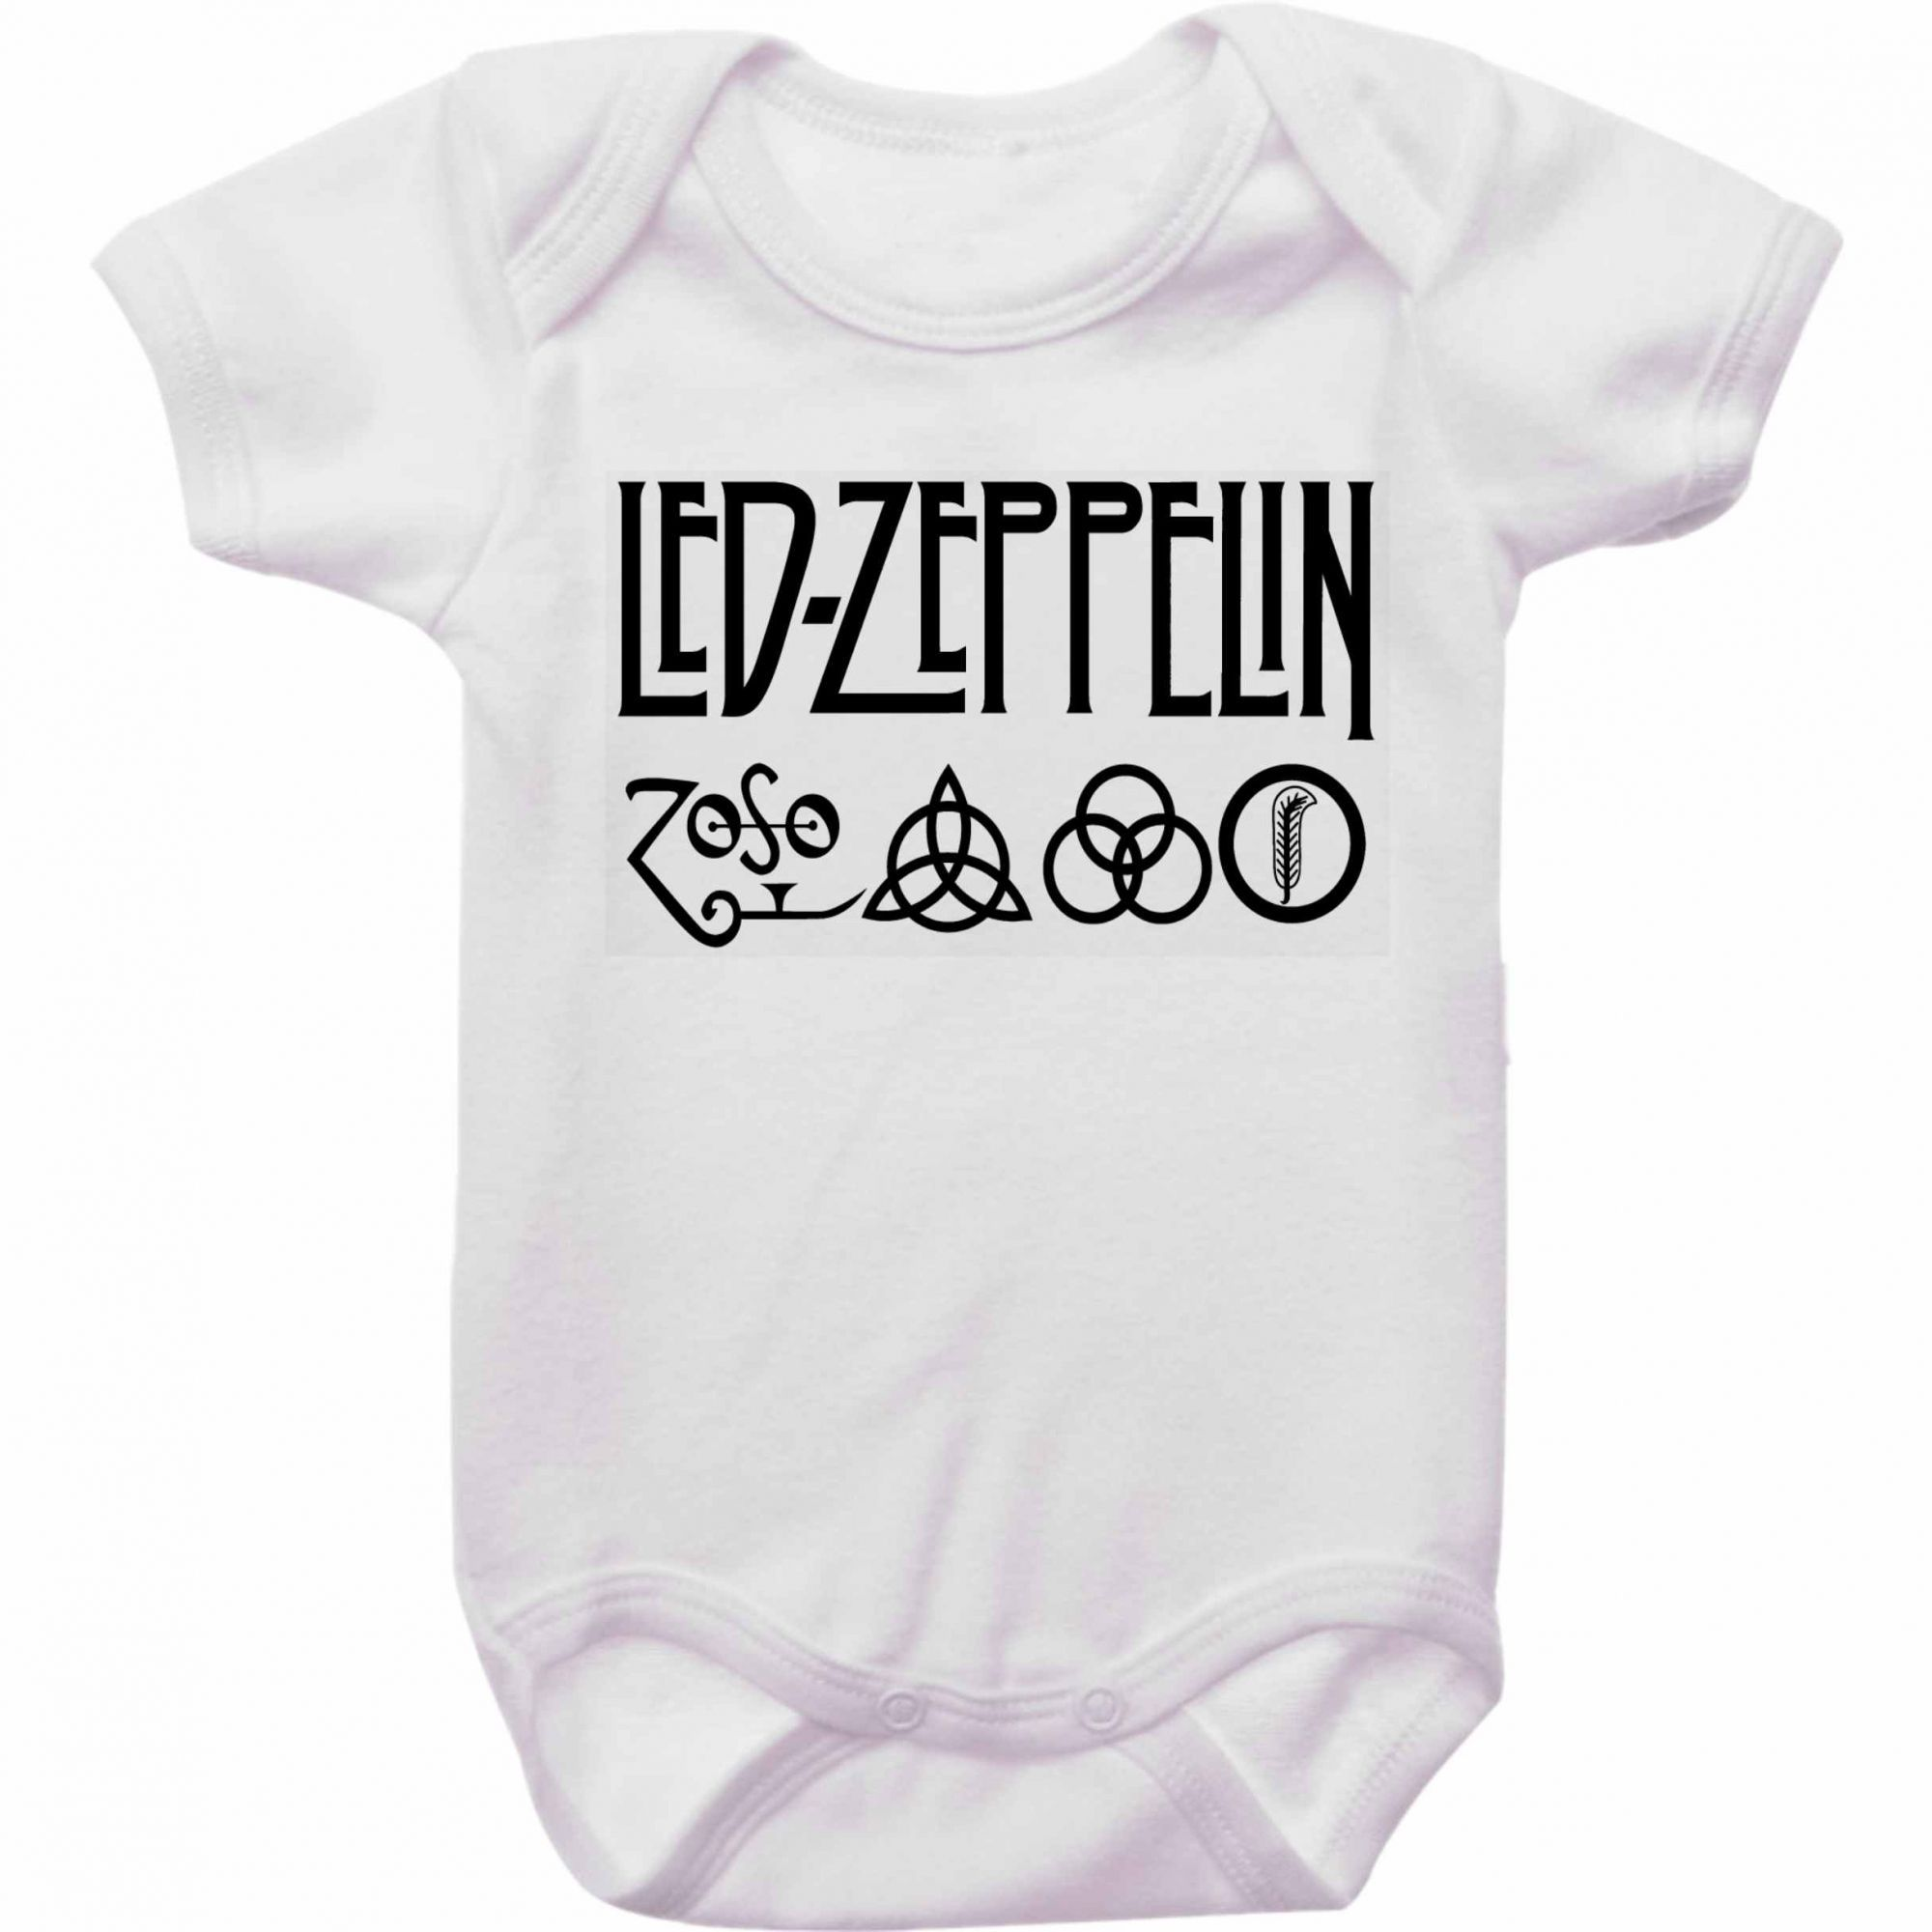 Body Bebê Rock Led Zeppelin